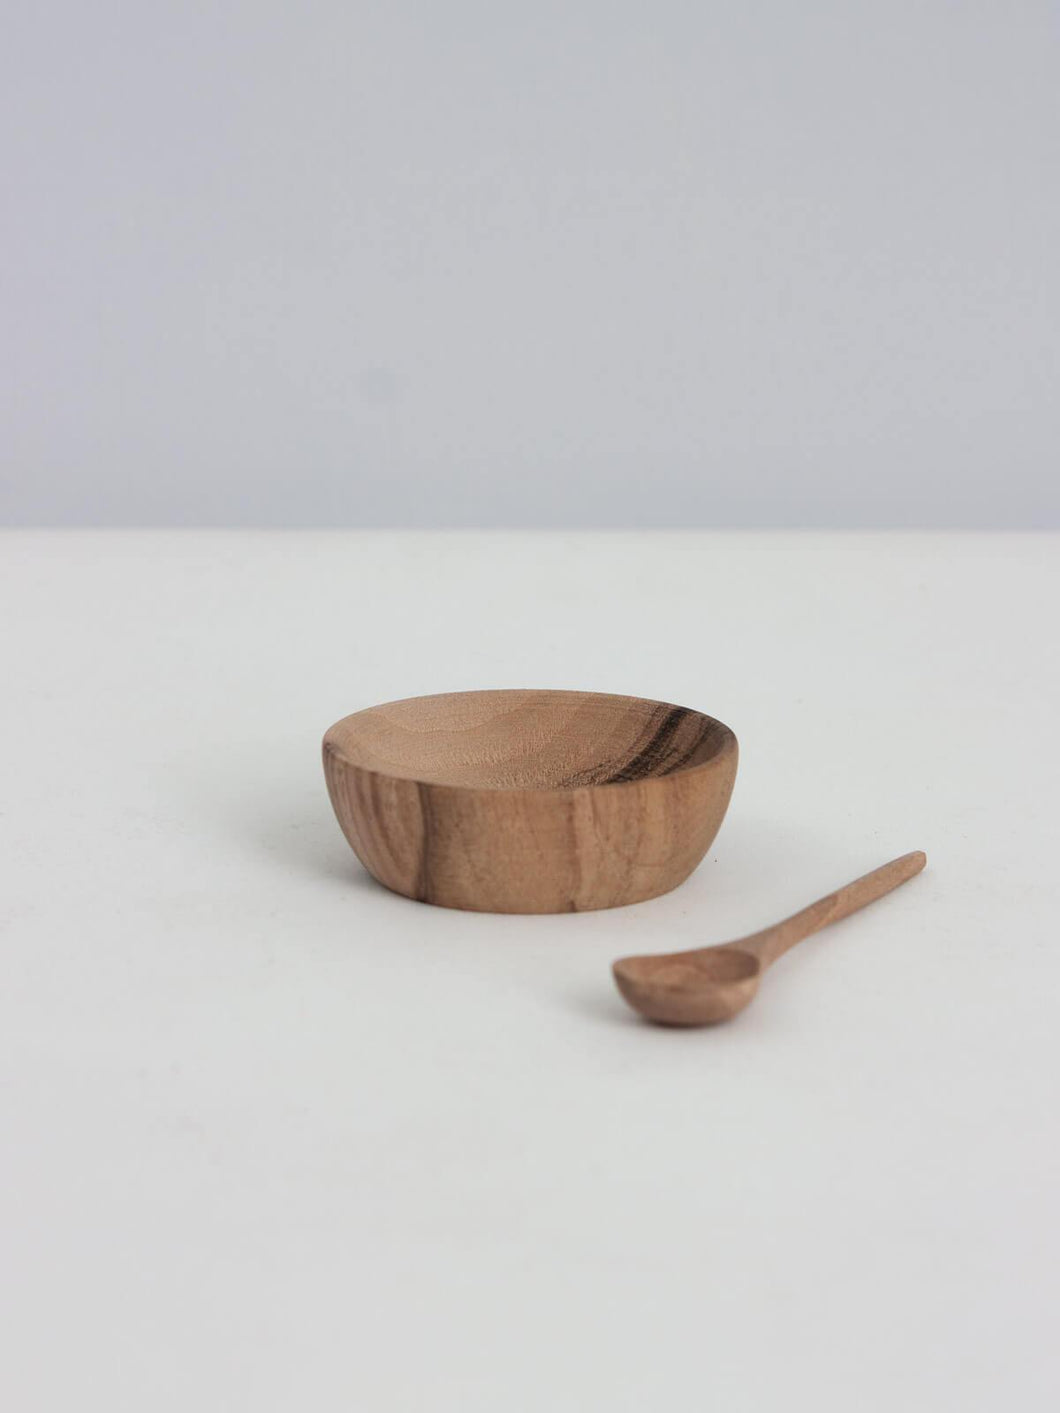 Walnut Wood Spice Bowl & Spoon